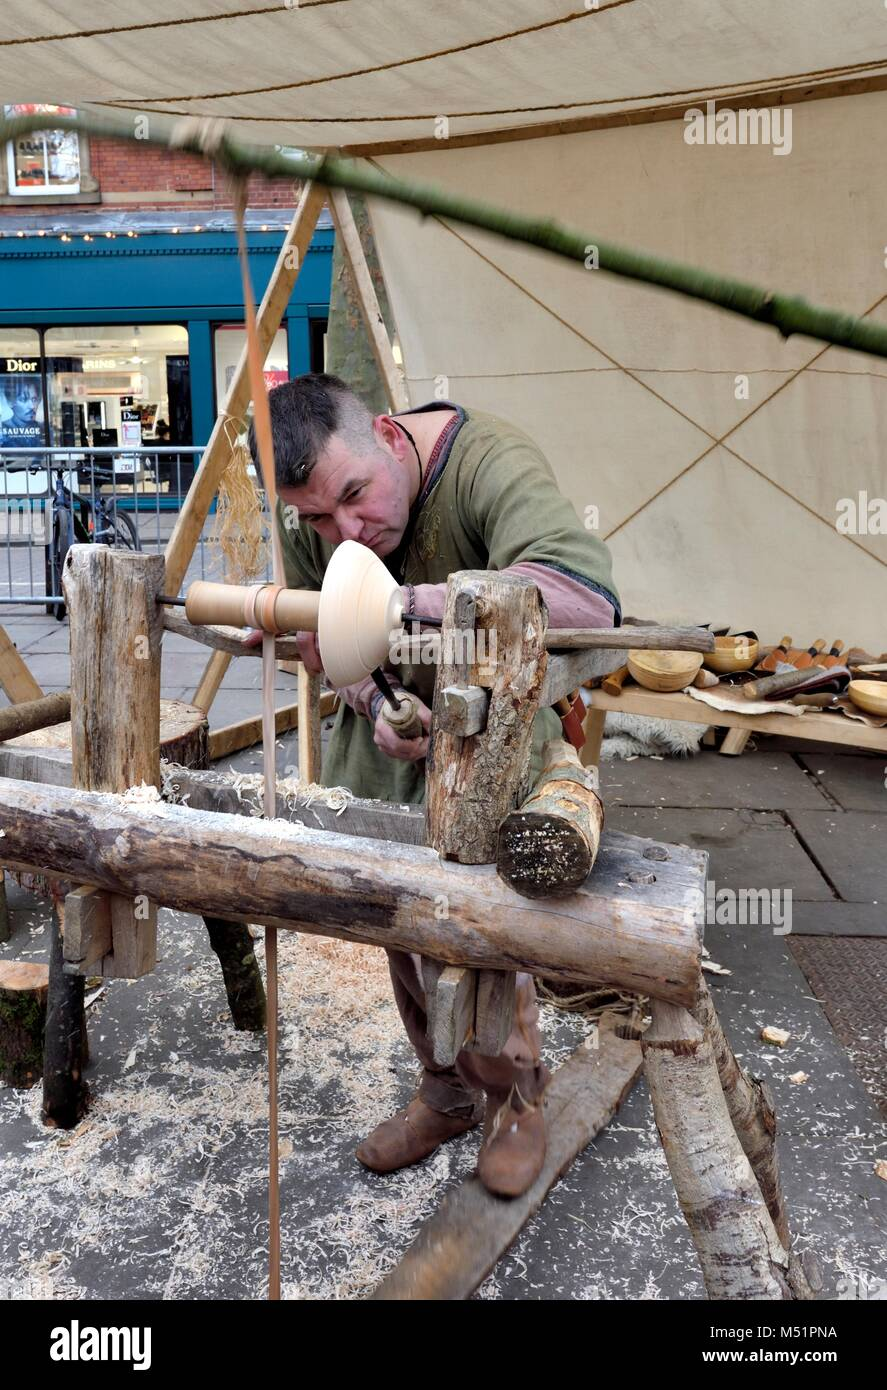 A man carving a wooden dish on a foot operated turning lathe York,North Yorkshire, England UK - Stock Image